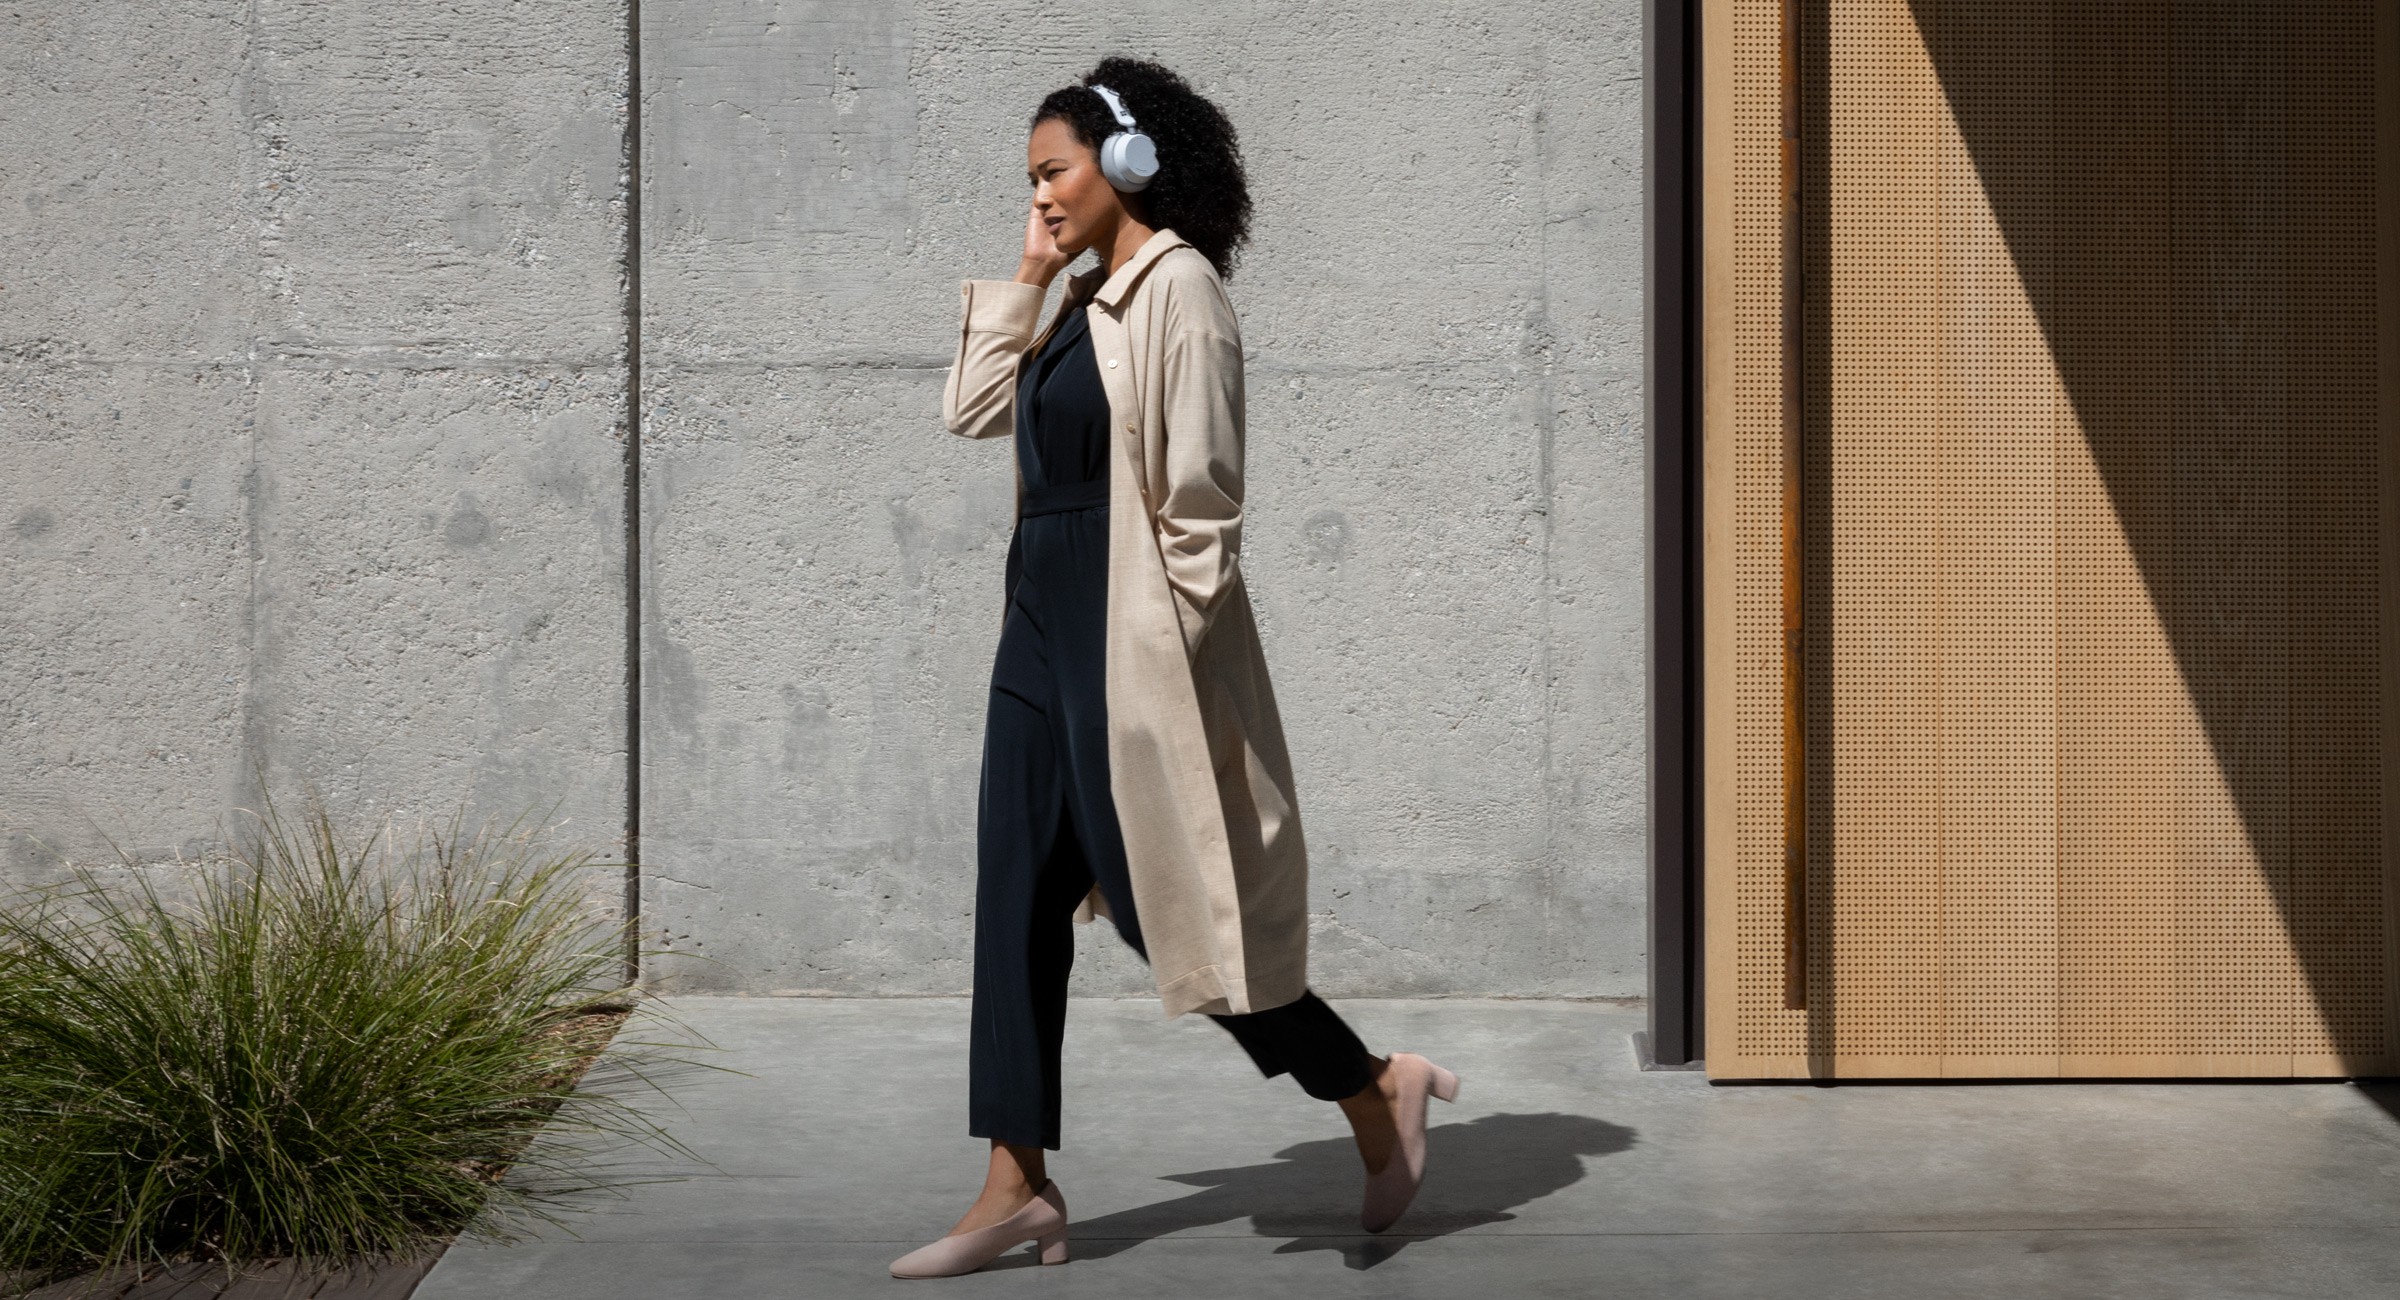 A woman walking with Surface Headphones on her head